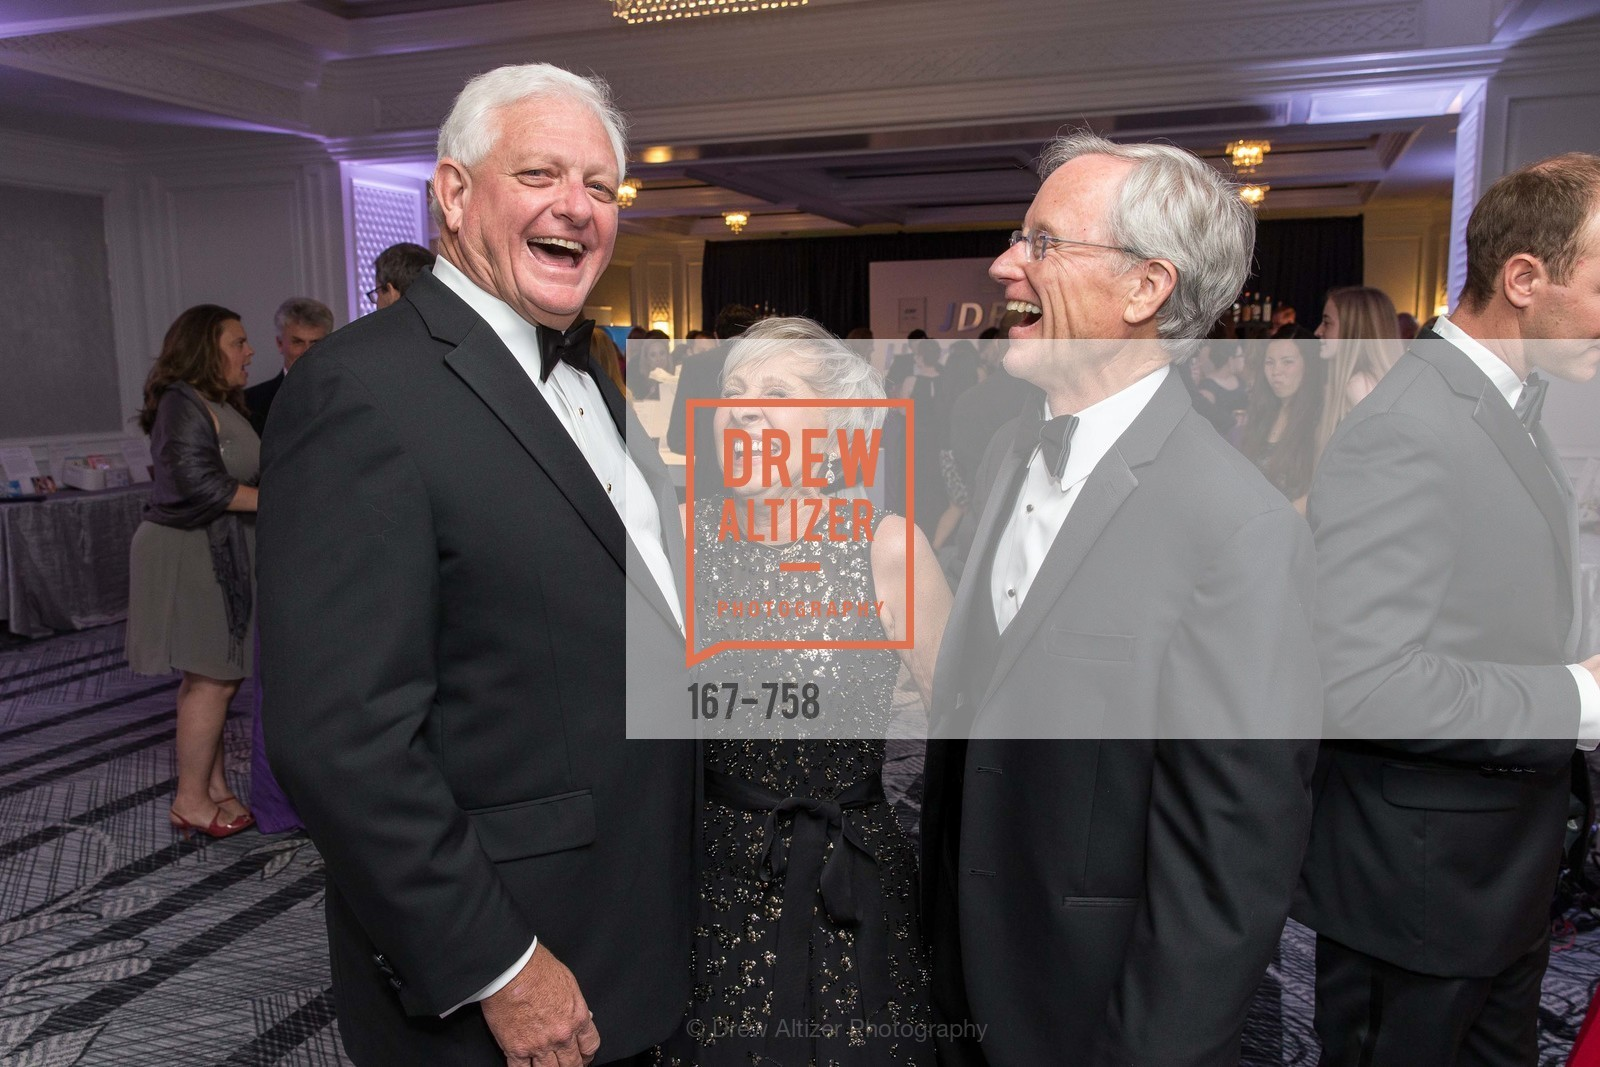 John Brady, Pam Sagan, Dayton Coles, JUVENILE DIABETES RESEARCH FOUNDATION  Hope Gala, US, May 30th, 2015,Drew Altizer, Drew Altizer Photography, full-service agency, private events, San Francisco photographer, photographer california